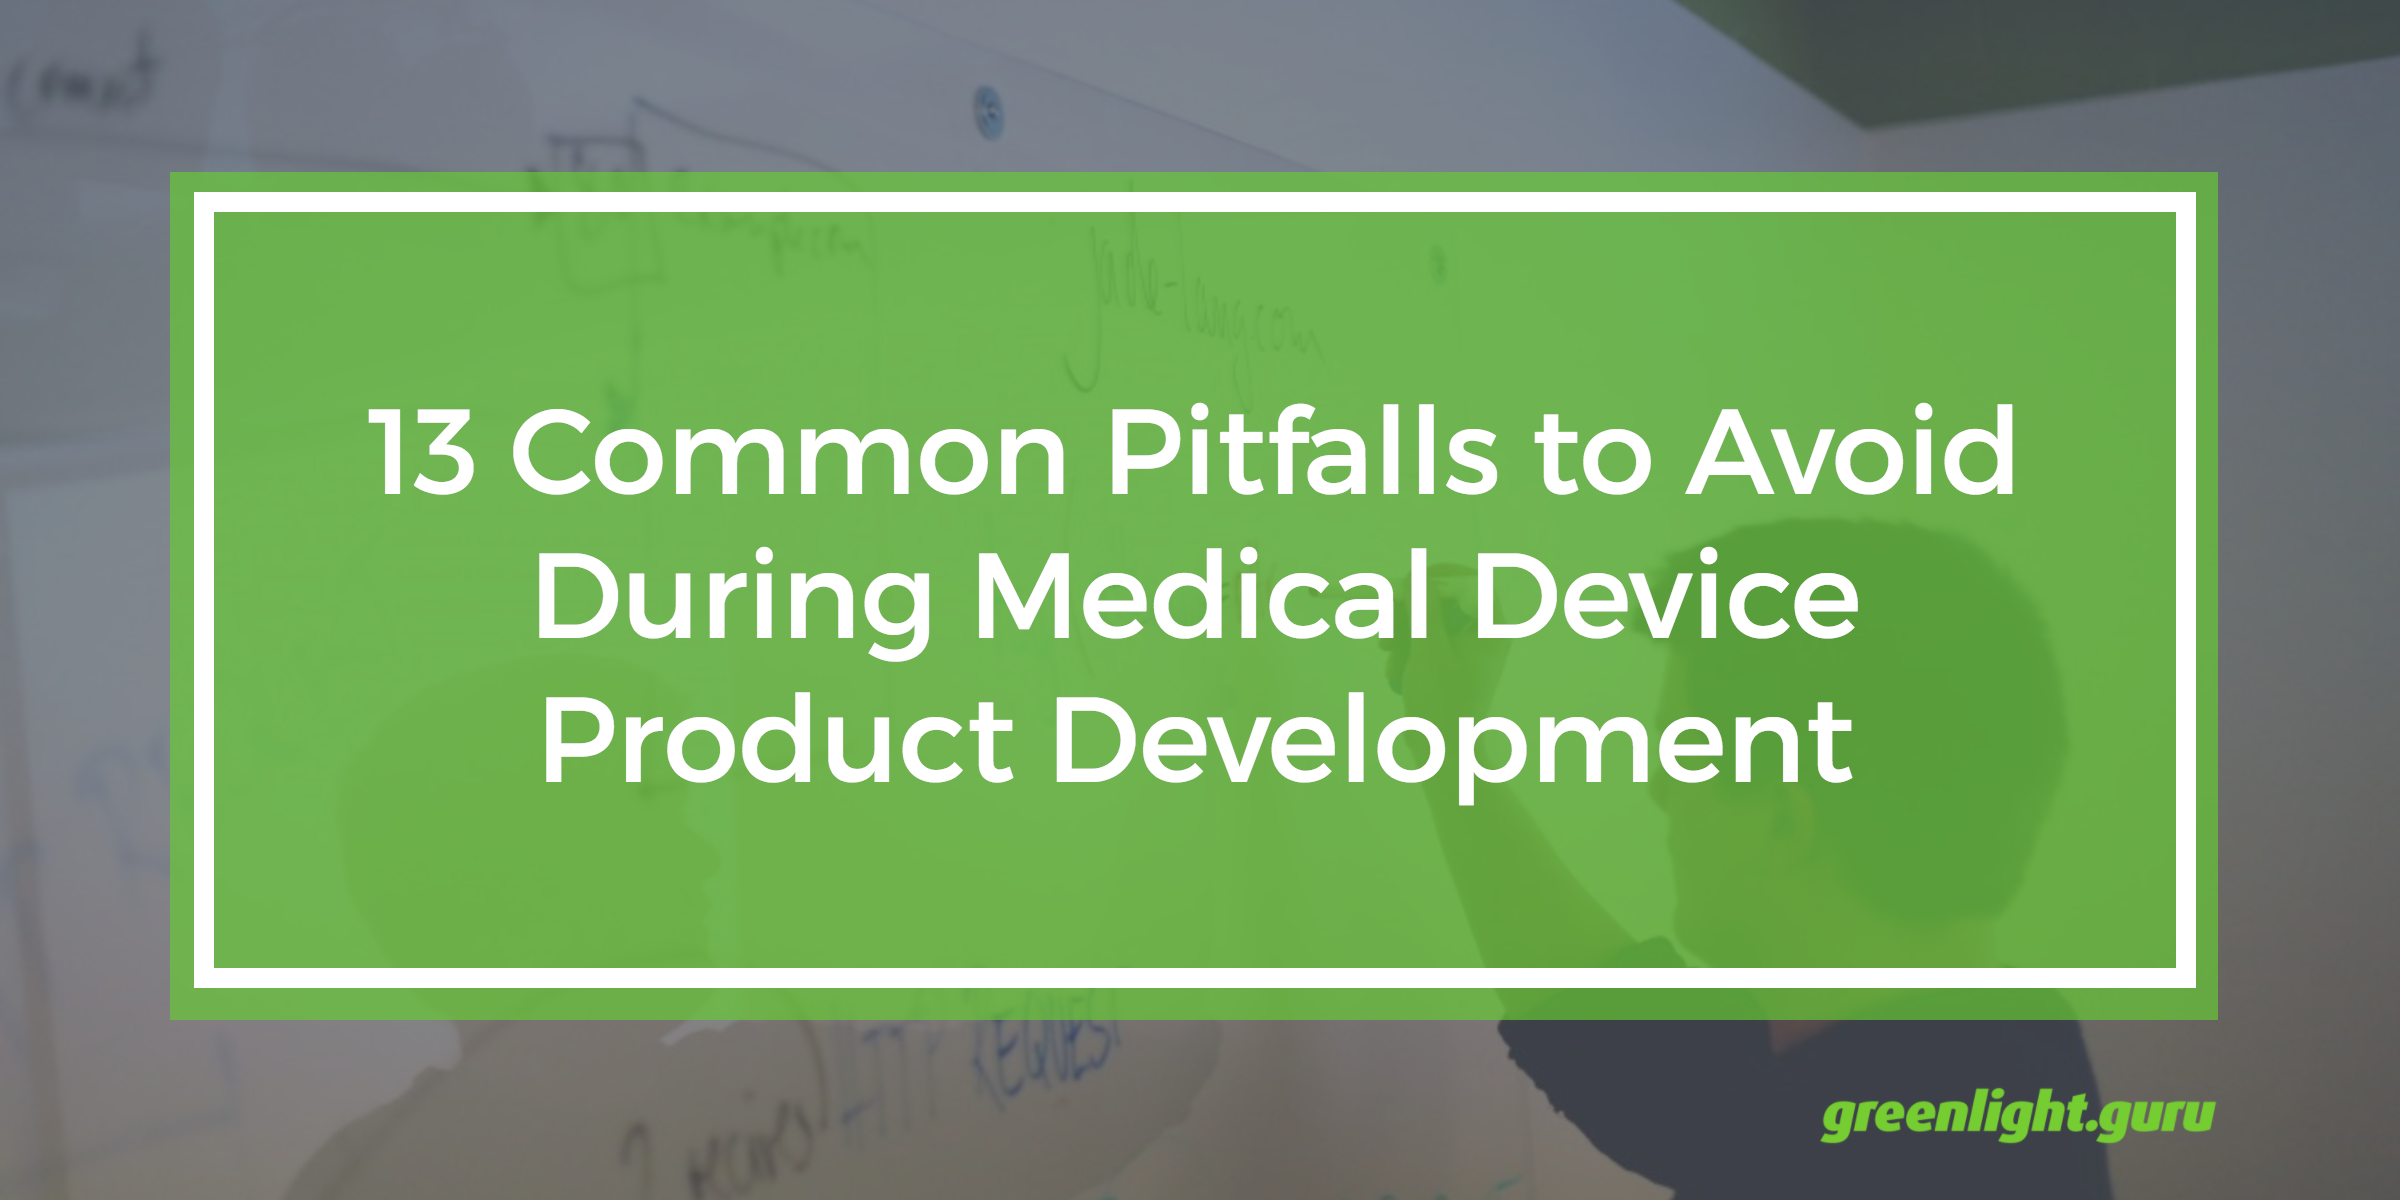 common_pitfalls_to_avoid_during_medical_device_product_development.png